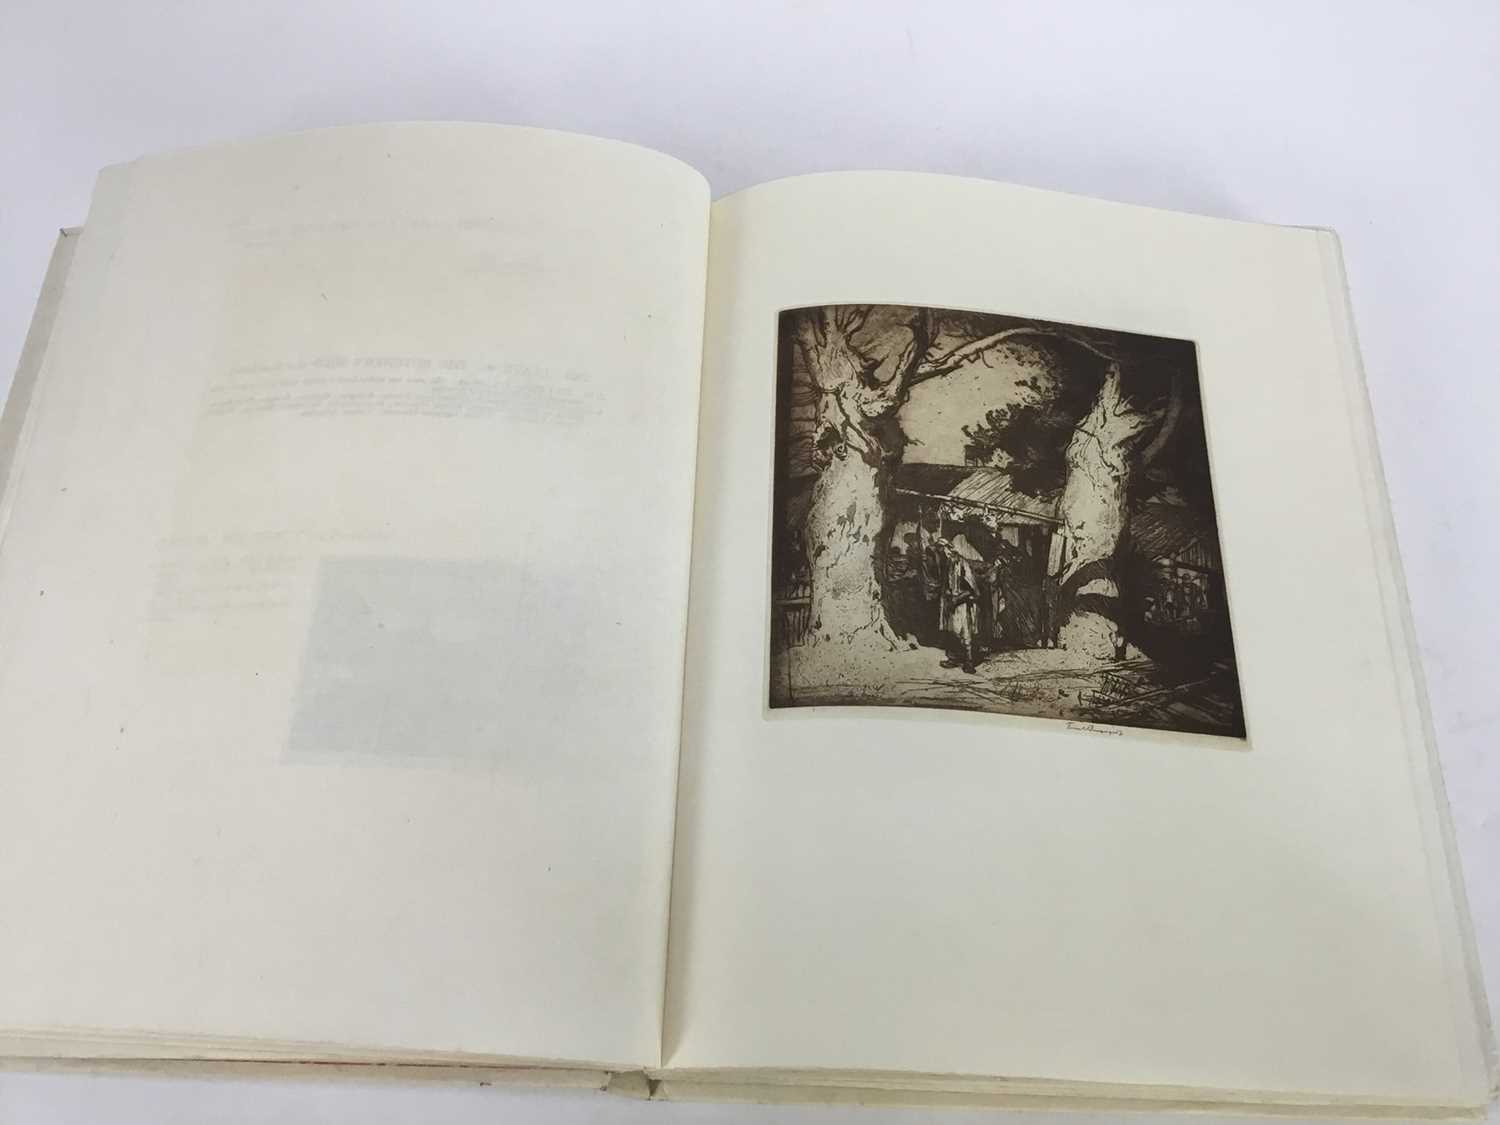 Book - The Etchings of Frank Brangwyn, R.A. A Catalogue Raisonne By W. Gaunt, limited edition 10/125 - Image 6 of 8